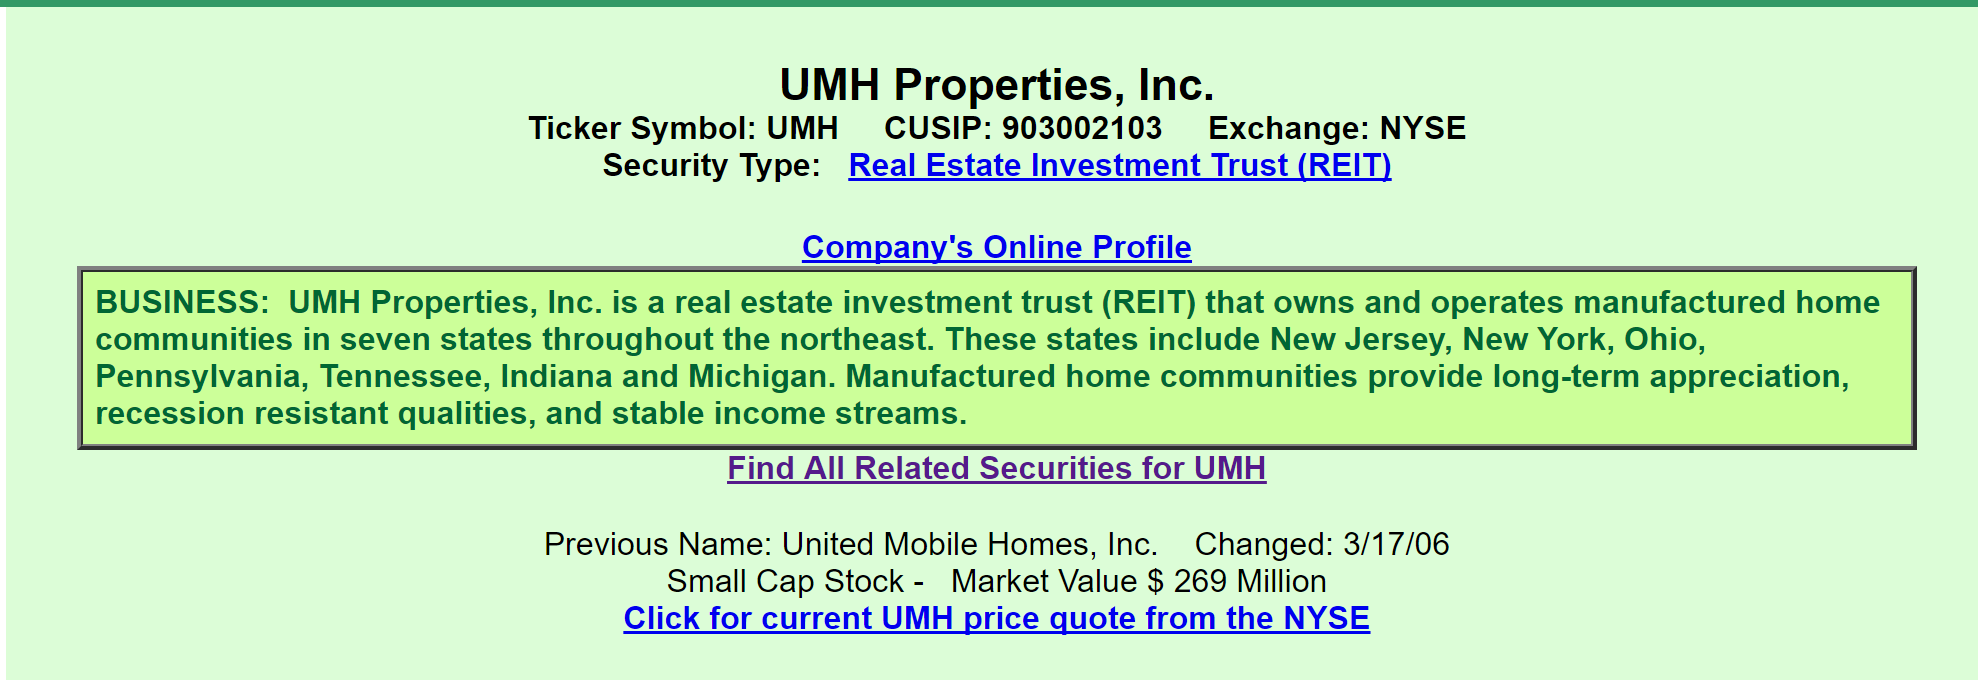 Umh properties a view from the perspective of a preferred investor a quick review informs us that umh is a reit that owns and operates manufactured home communities it ipod with a market value of 269 million buycottarizona Image collections